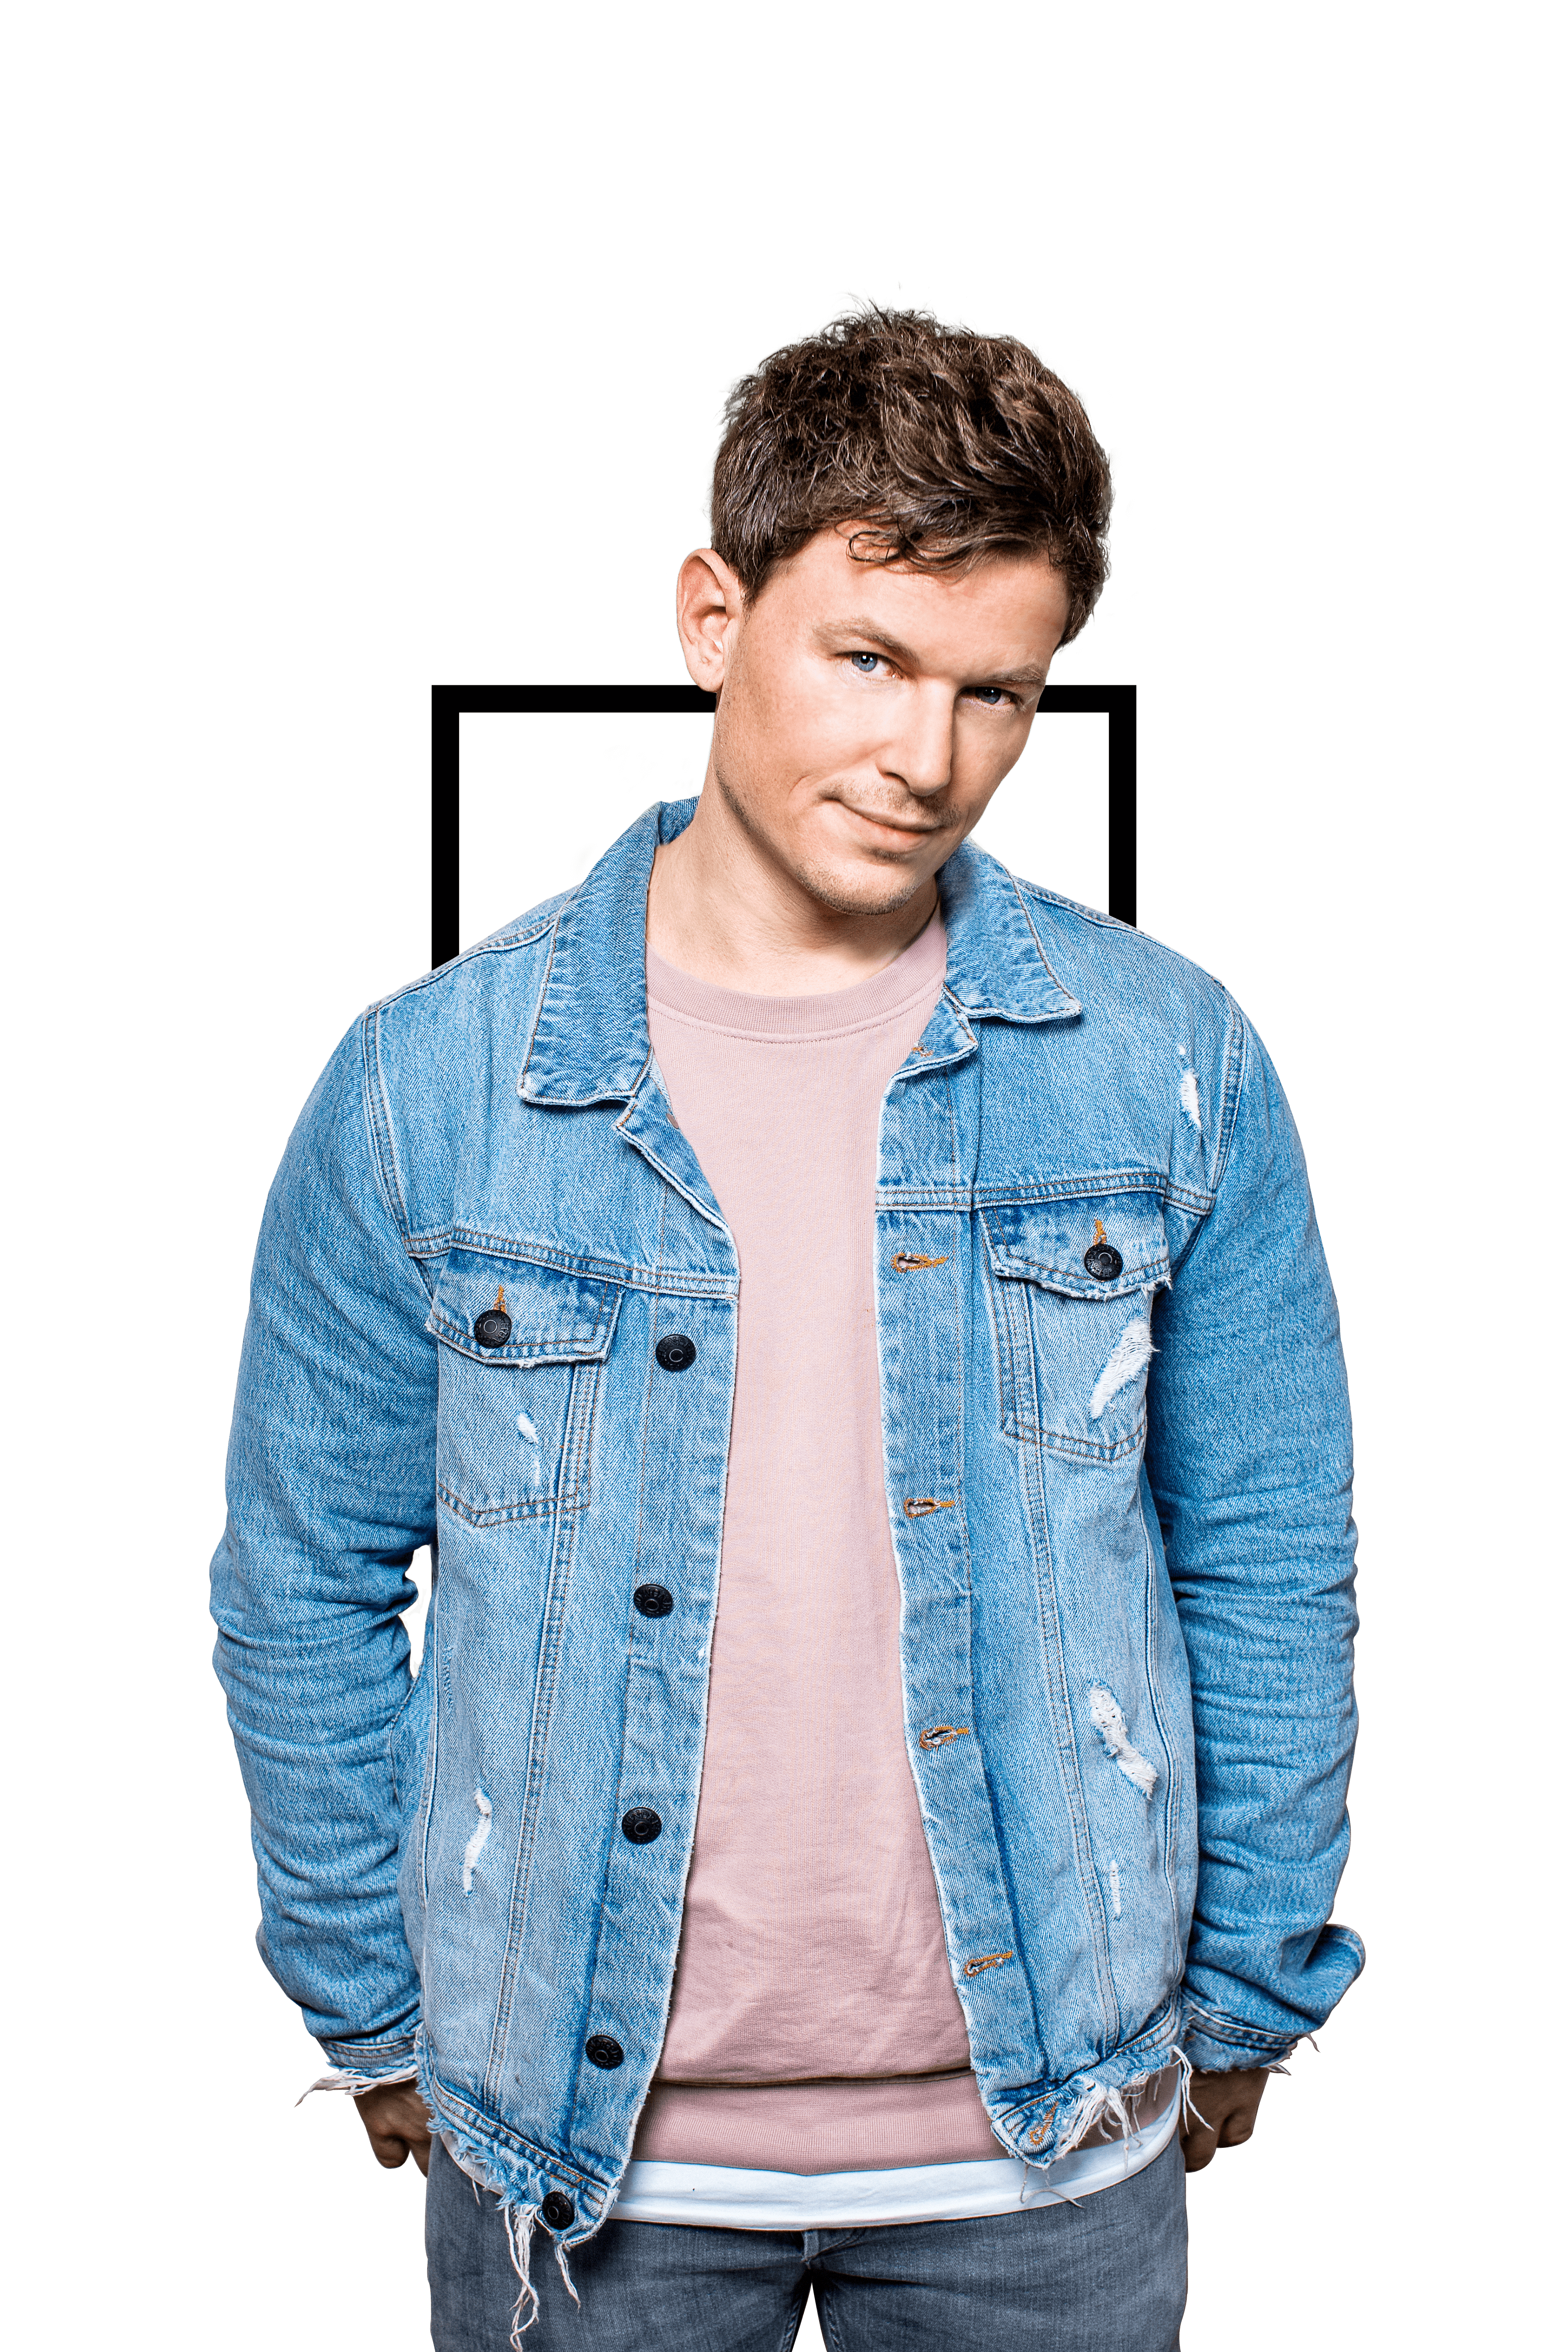 Fedde Le Grand and Funk Machine team up with jungle icon General Levy on new single 'Flex'